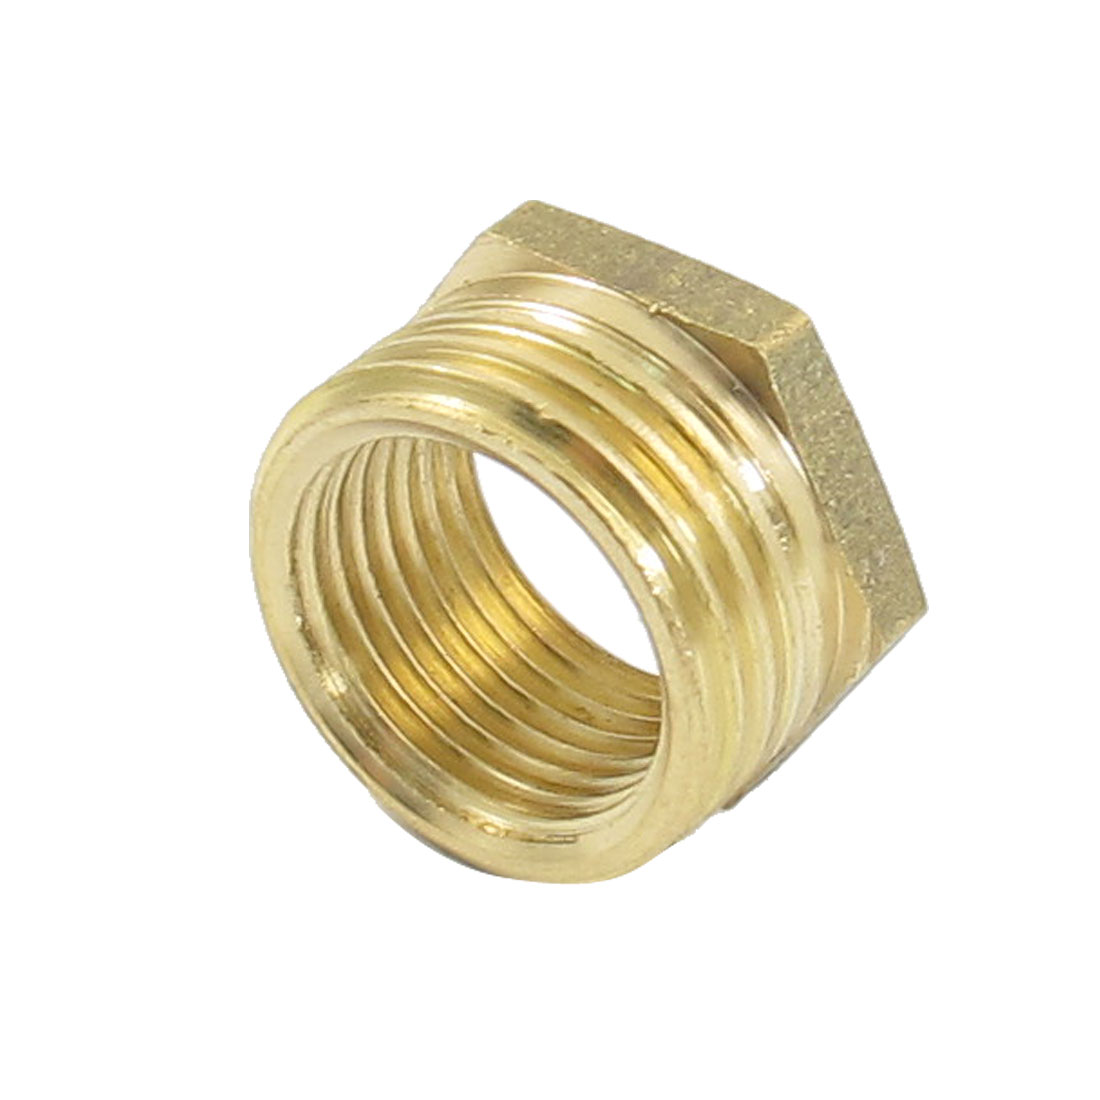 20mm Male to 16mm Female Brass Hex Reducing Bushing Adapter Pipe Fitting